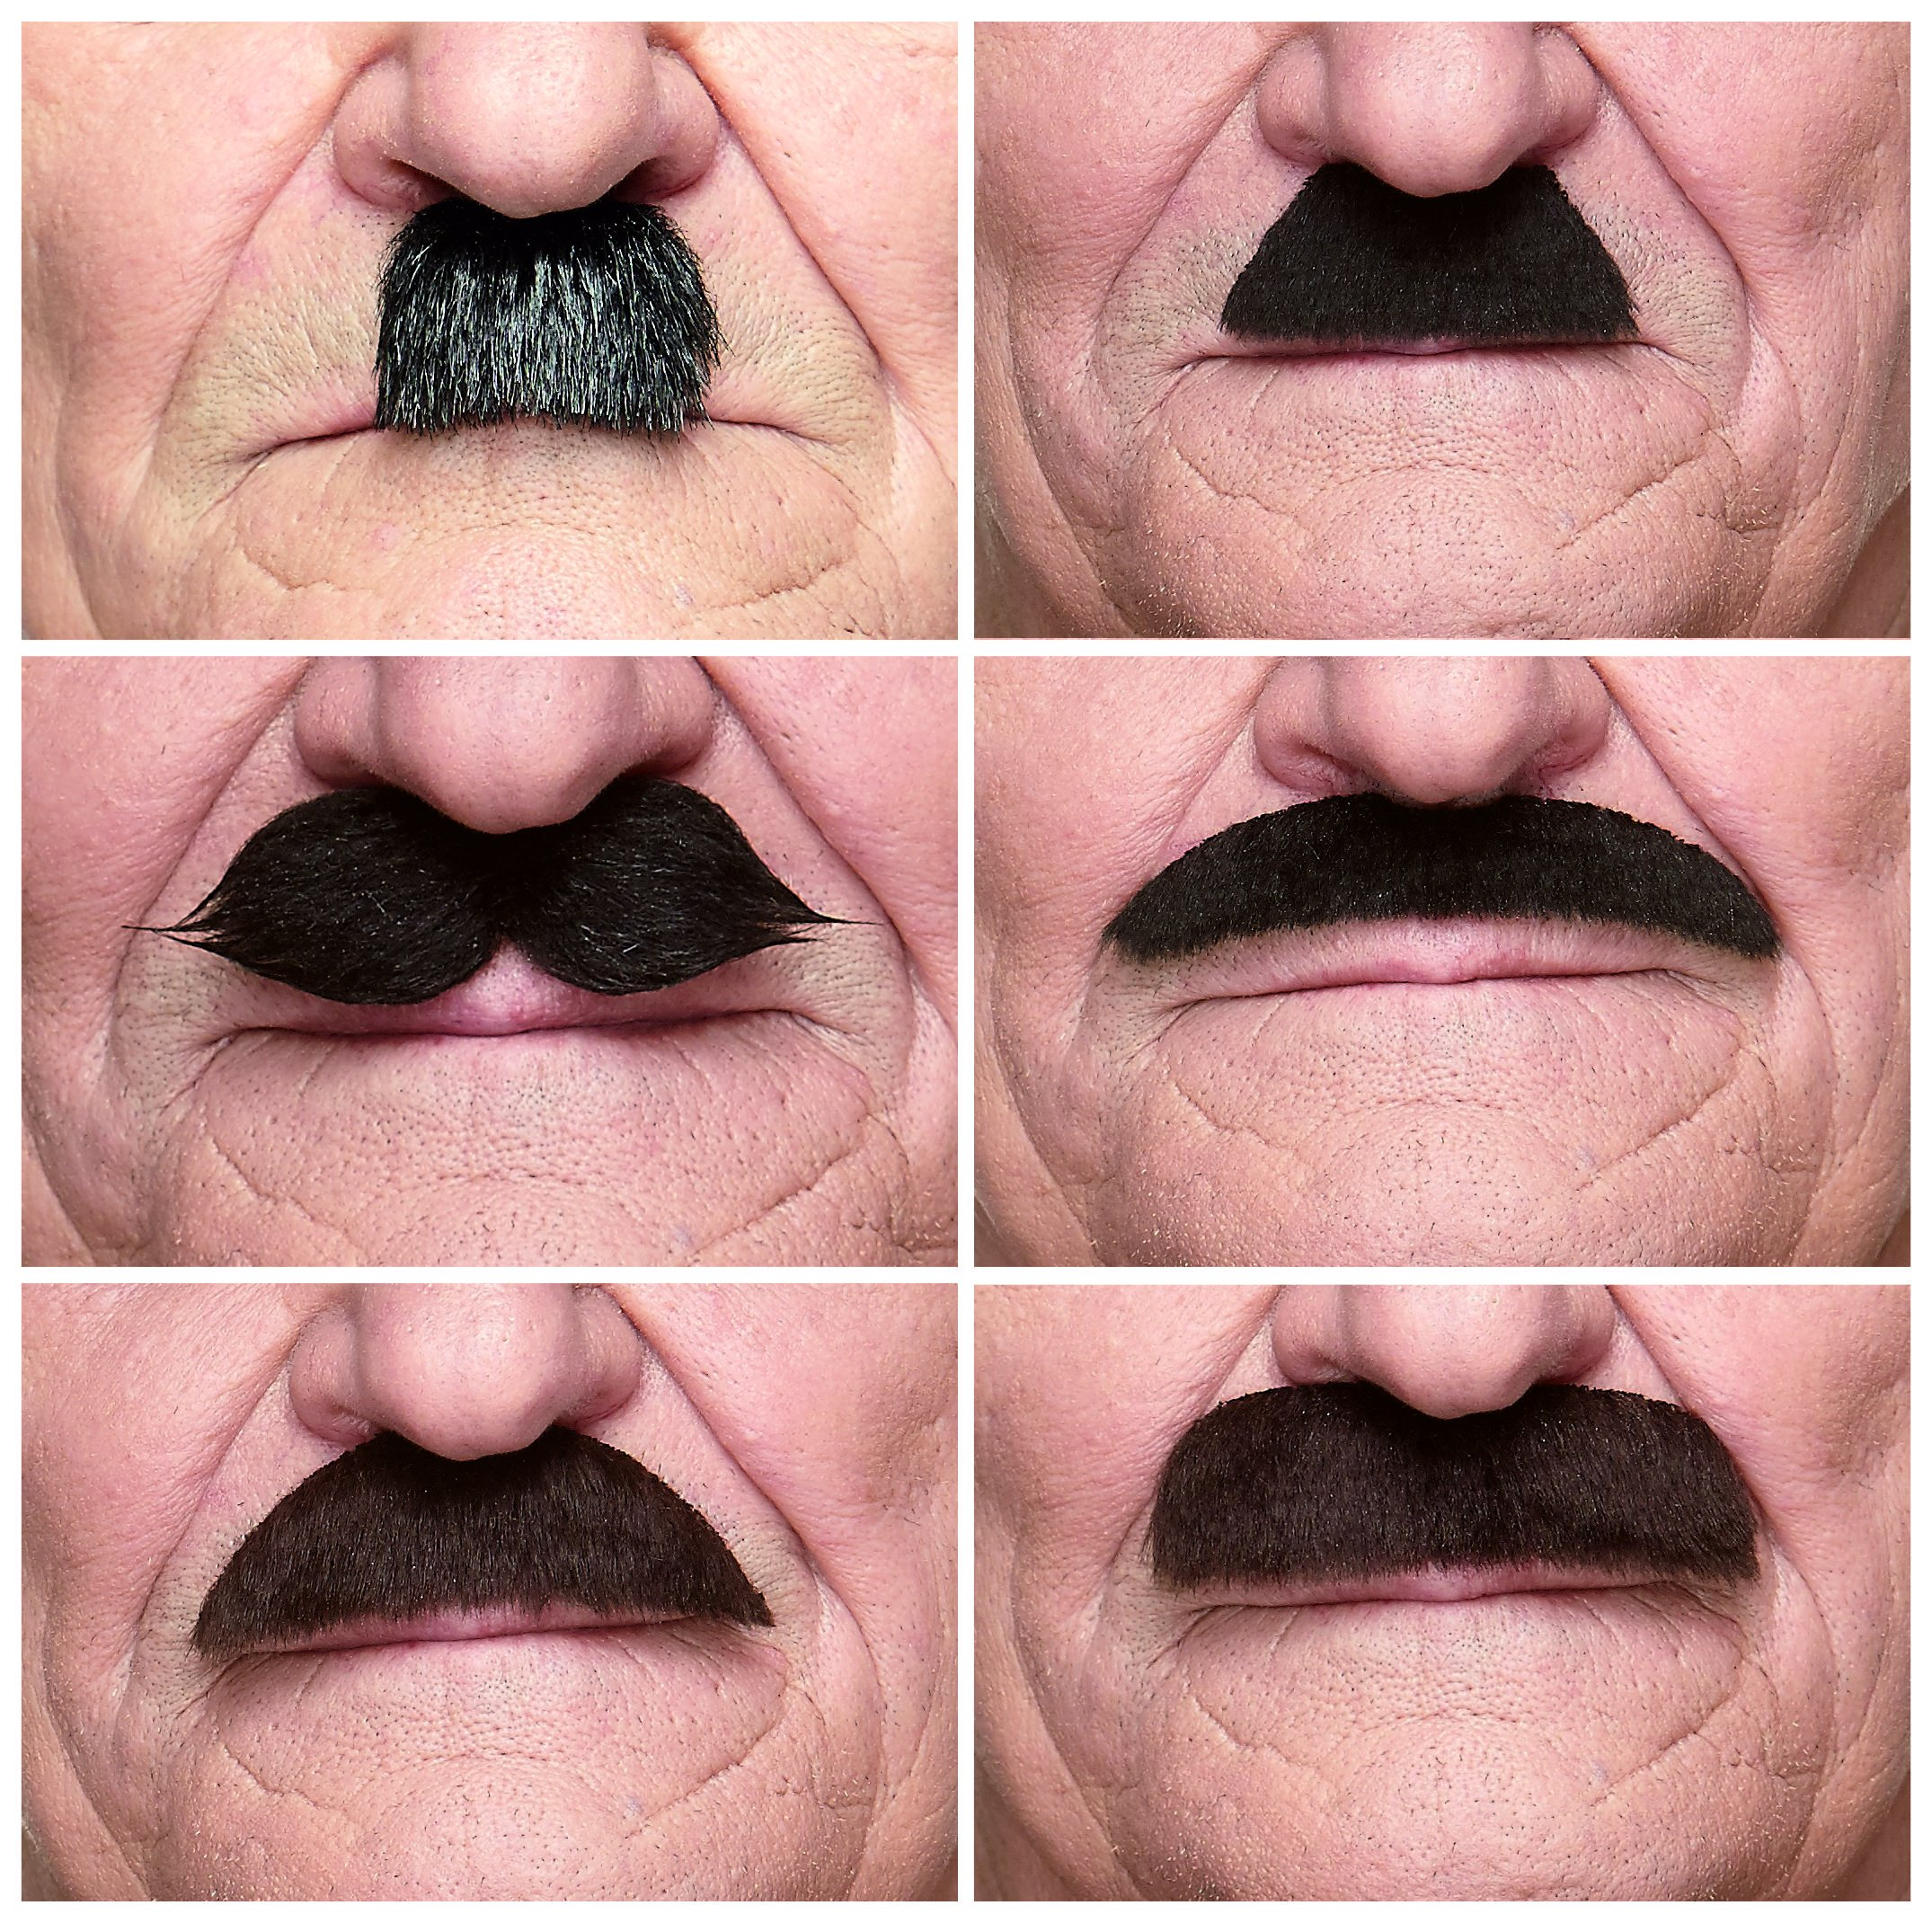 Mustaches Self Adhesive, Novelty, Fake, Value Pack (6pcs.)